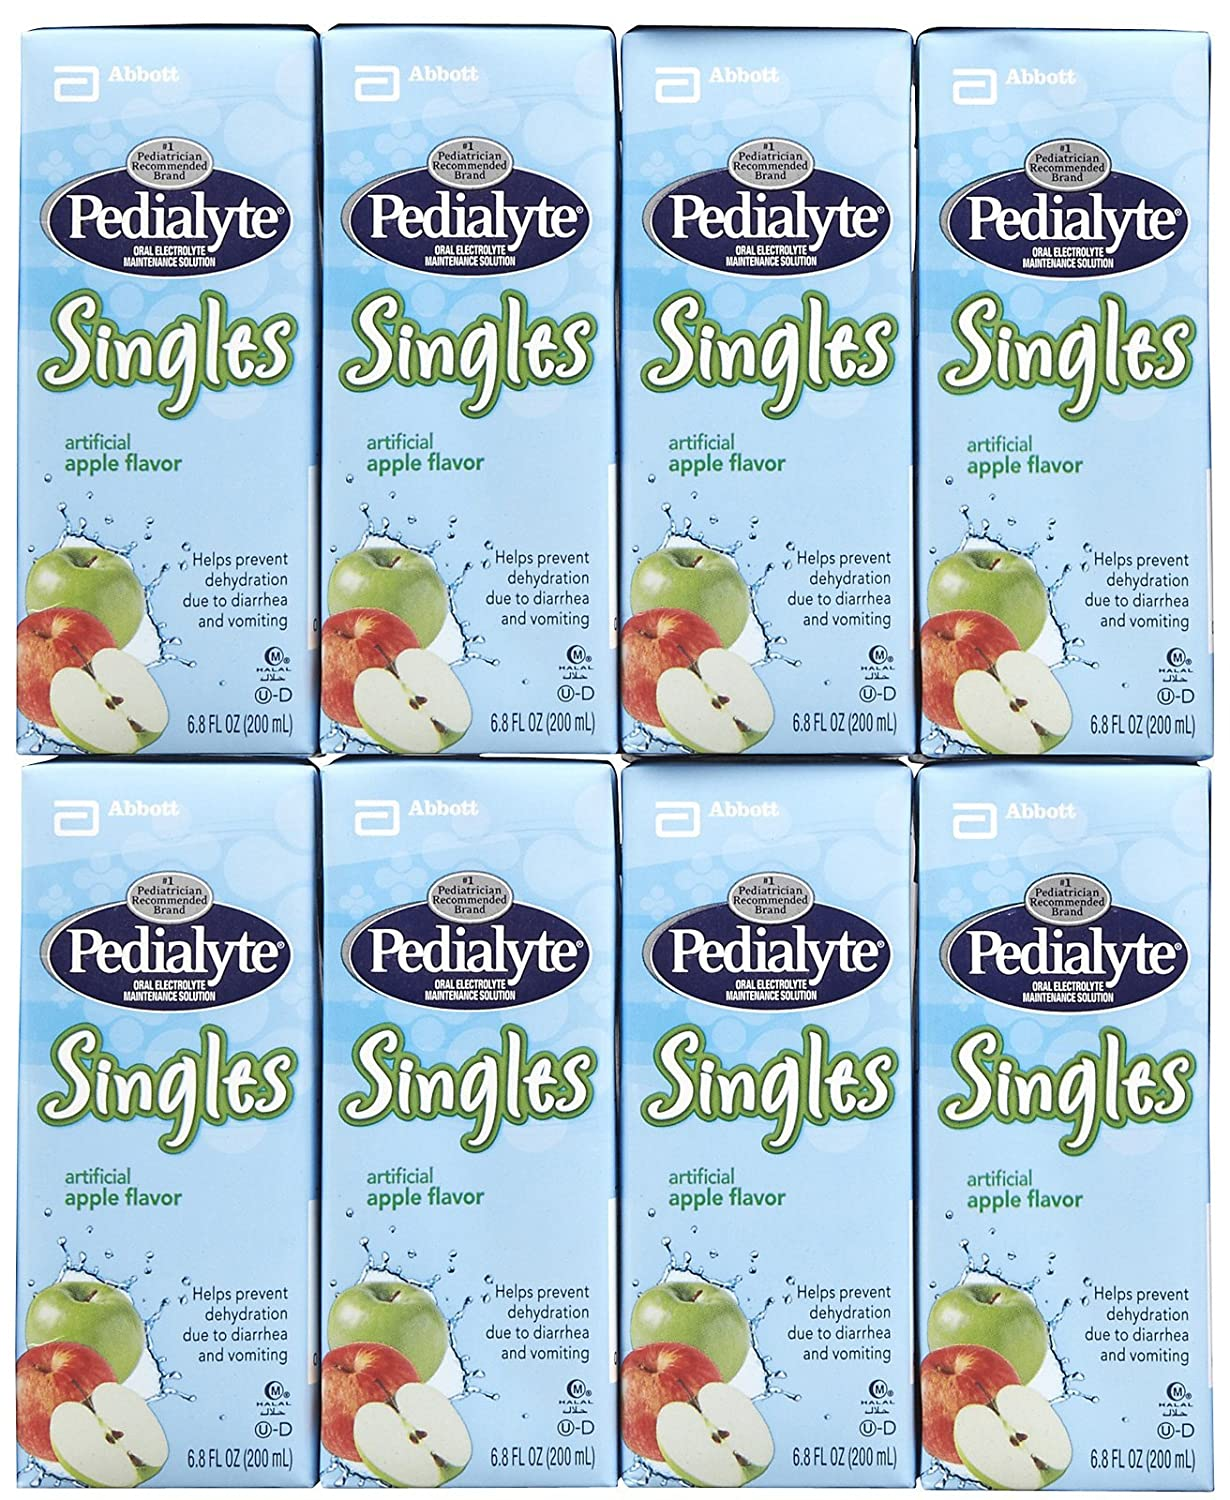 Amazon.com: Pedialyte Singles Apples (4)juice Boxes, Size:4x6.8 Oz: Health & Personal Care